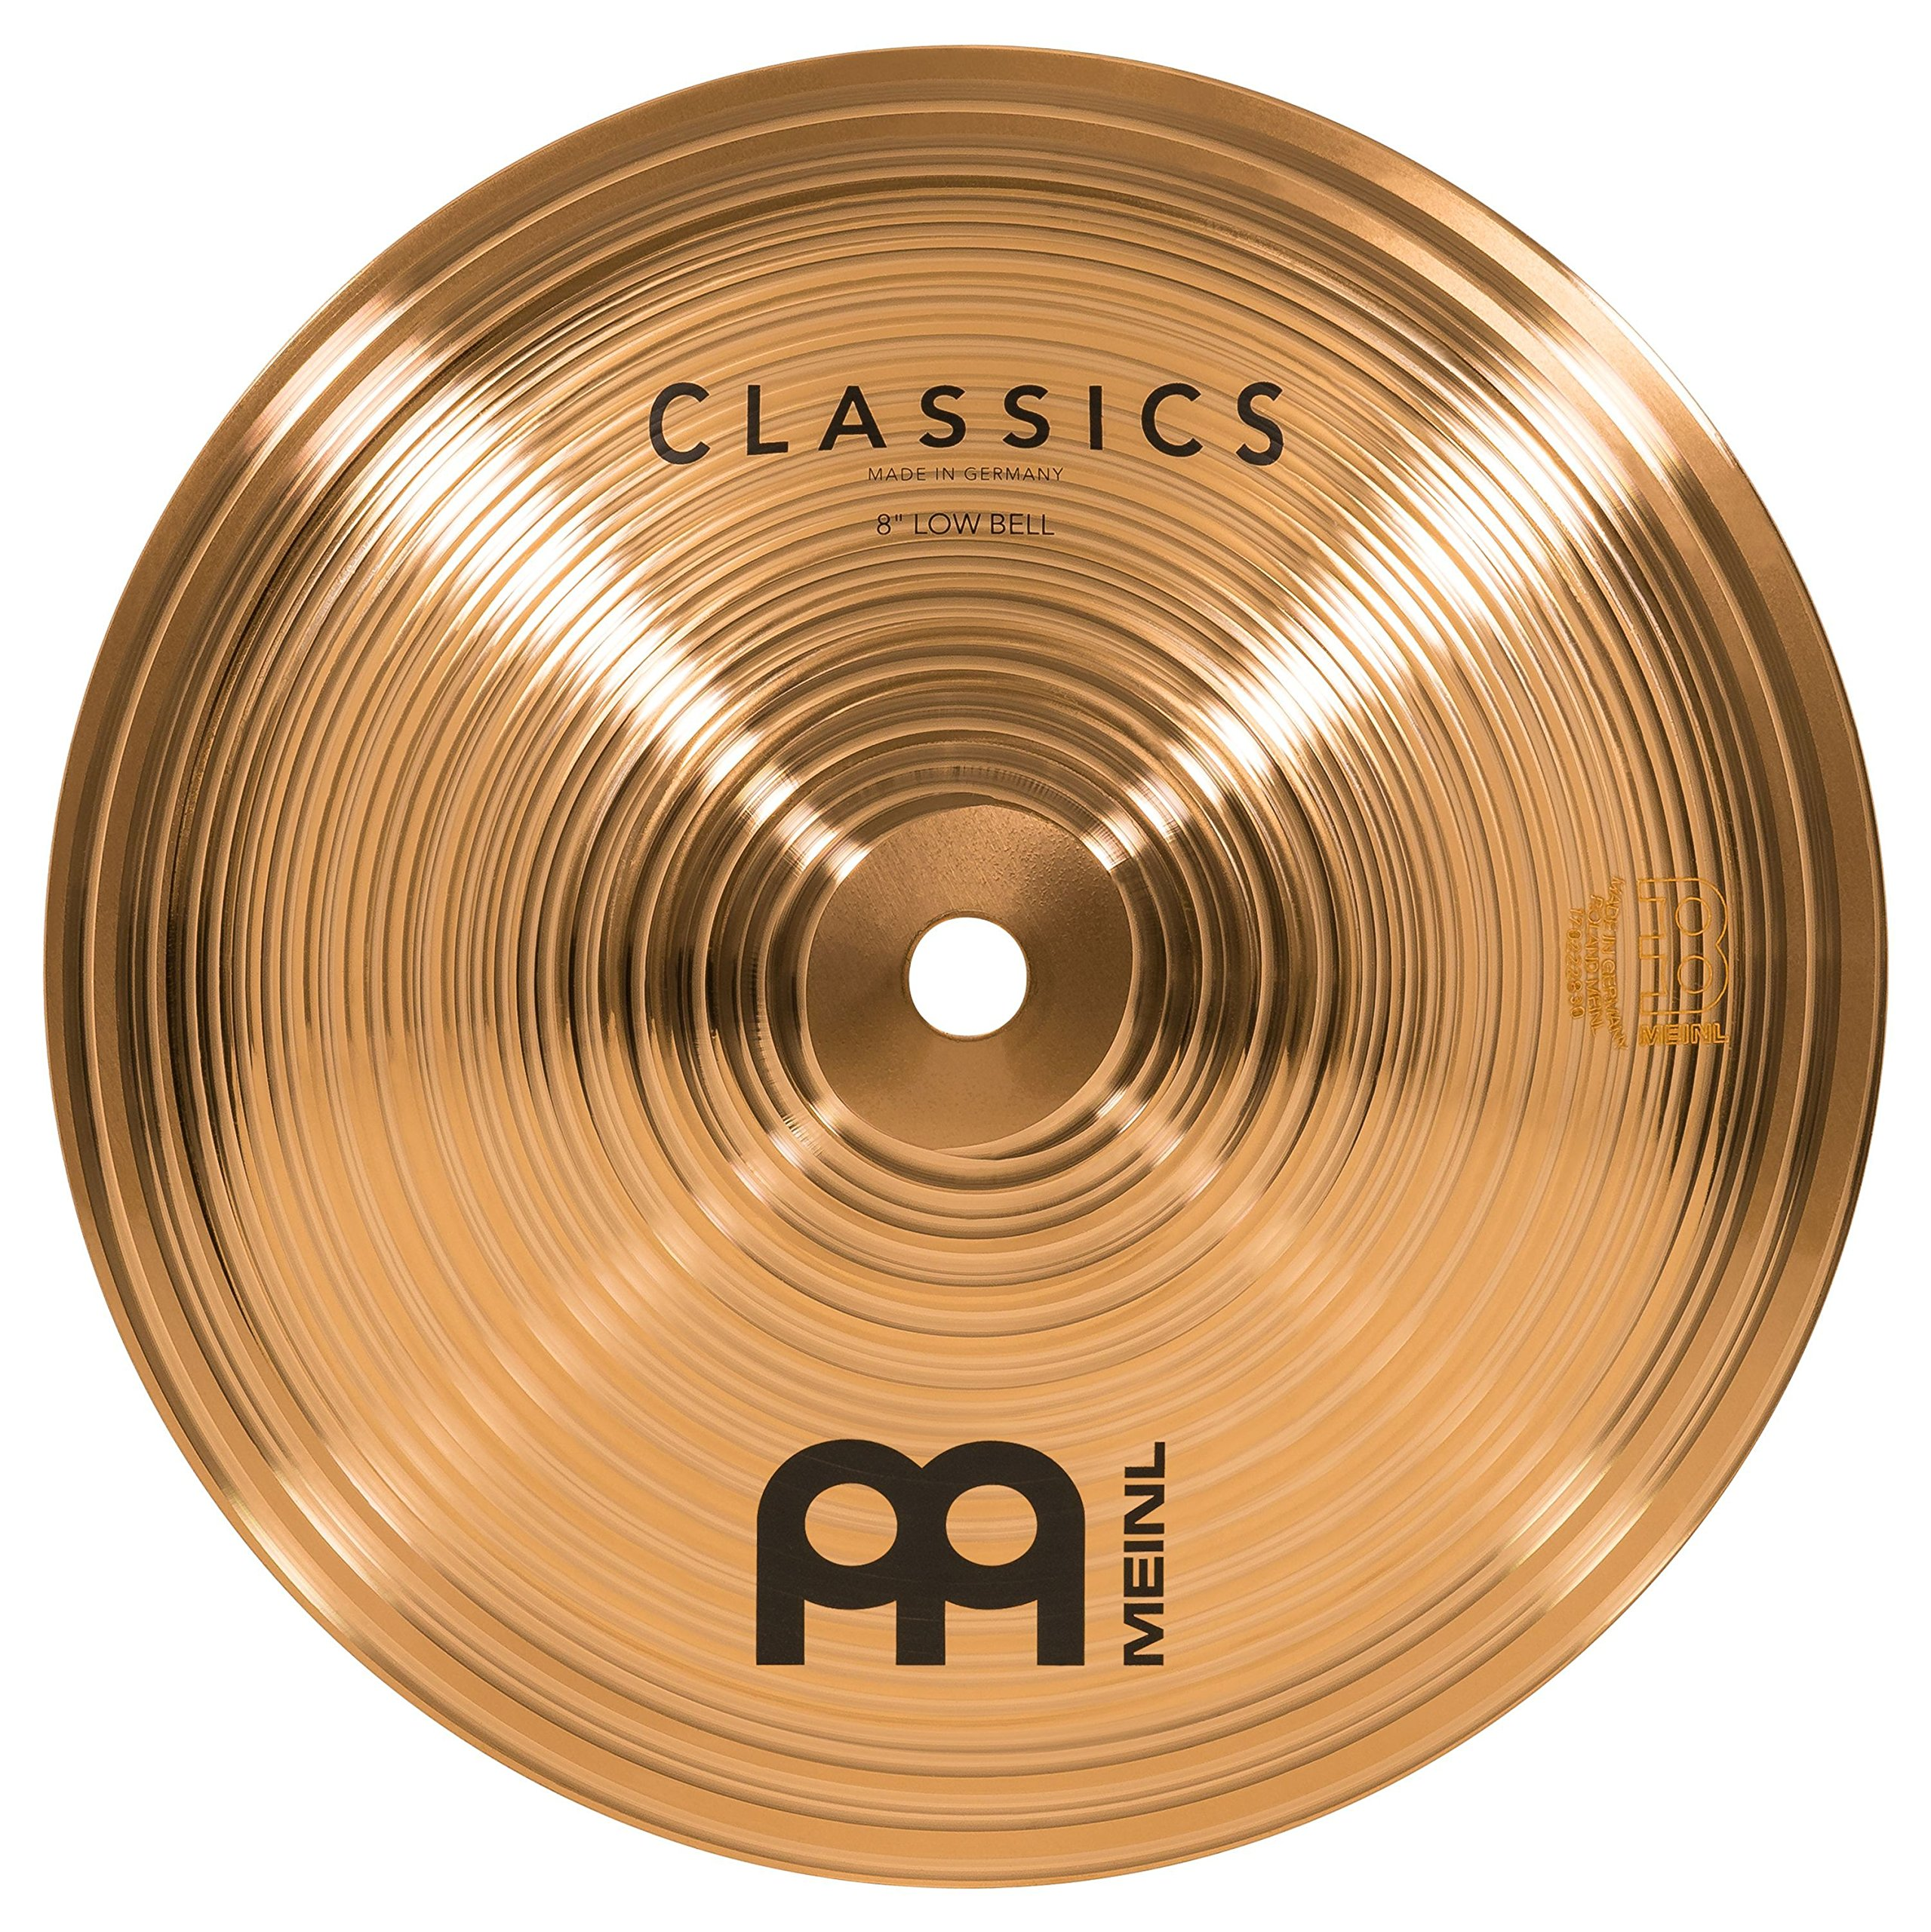 Meinl 8'' Low Bell - Classics Traditional - Made in Germany, 2-YEAR WARRANTY (C8BL)